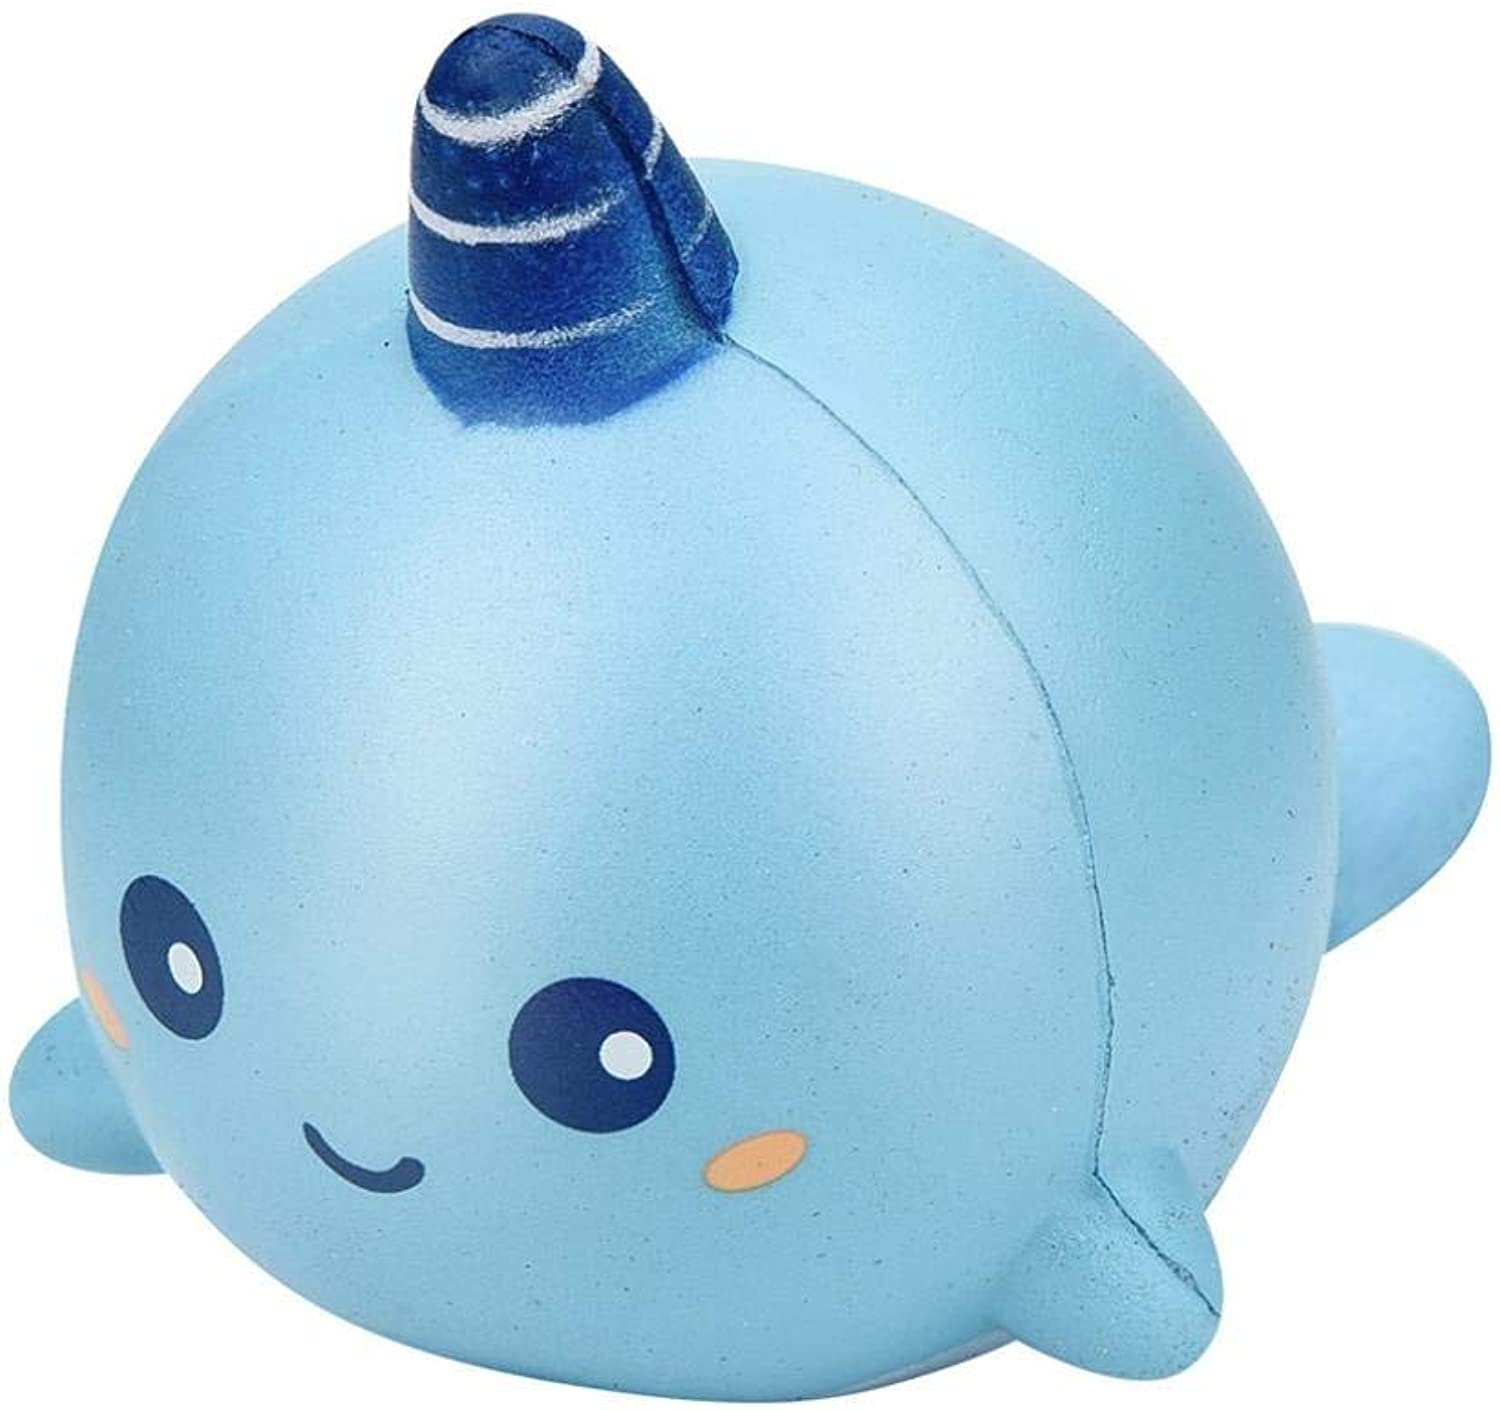 MChoice 8cm Unicorn Whale Cartoon Scented Squishy Charm Slow Rising Squeeze Toy Charm (bluee)